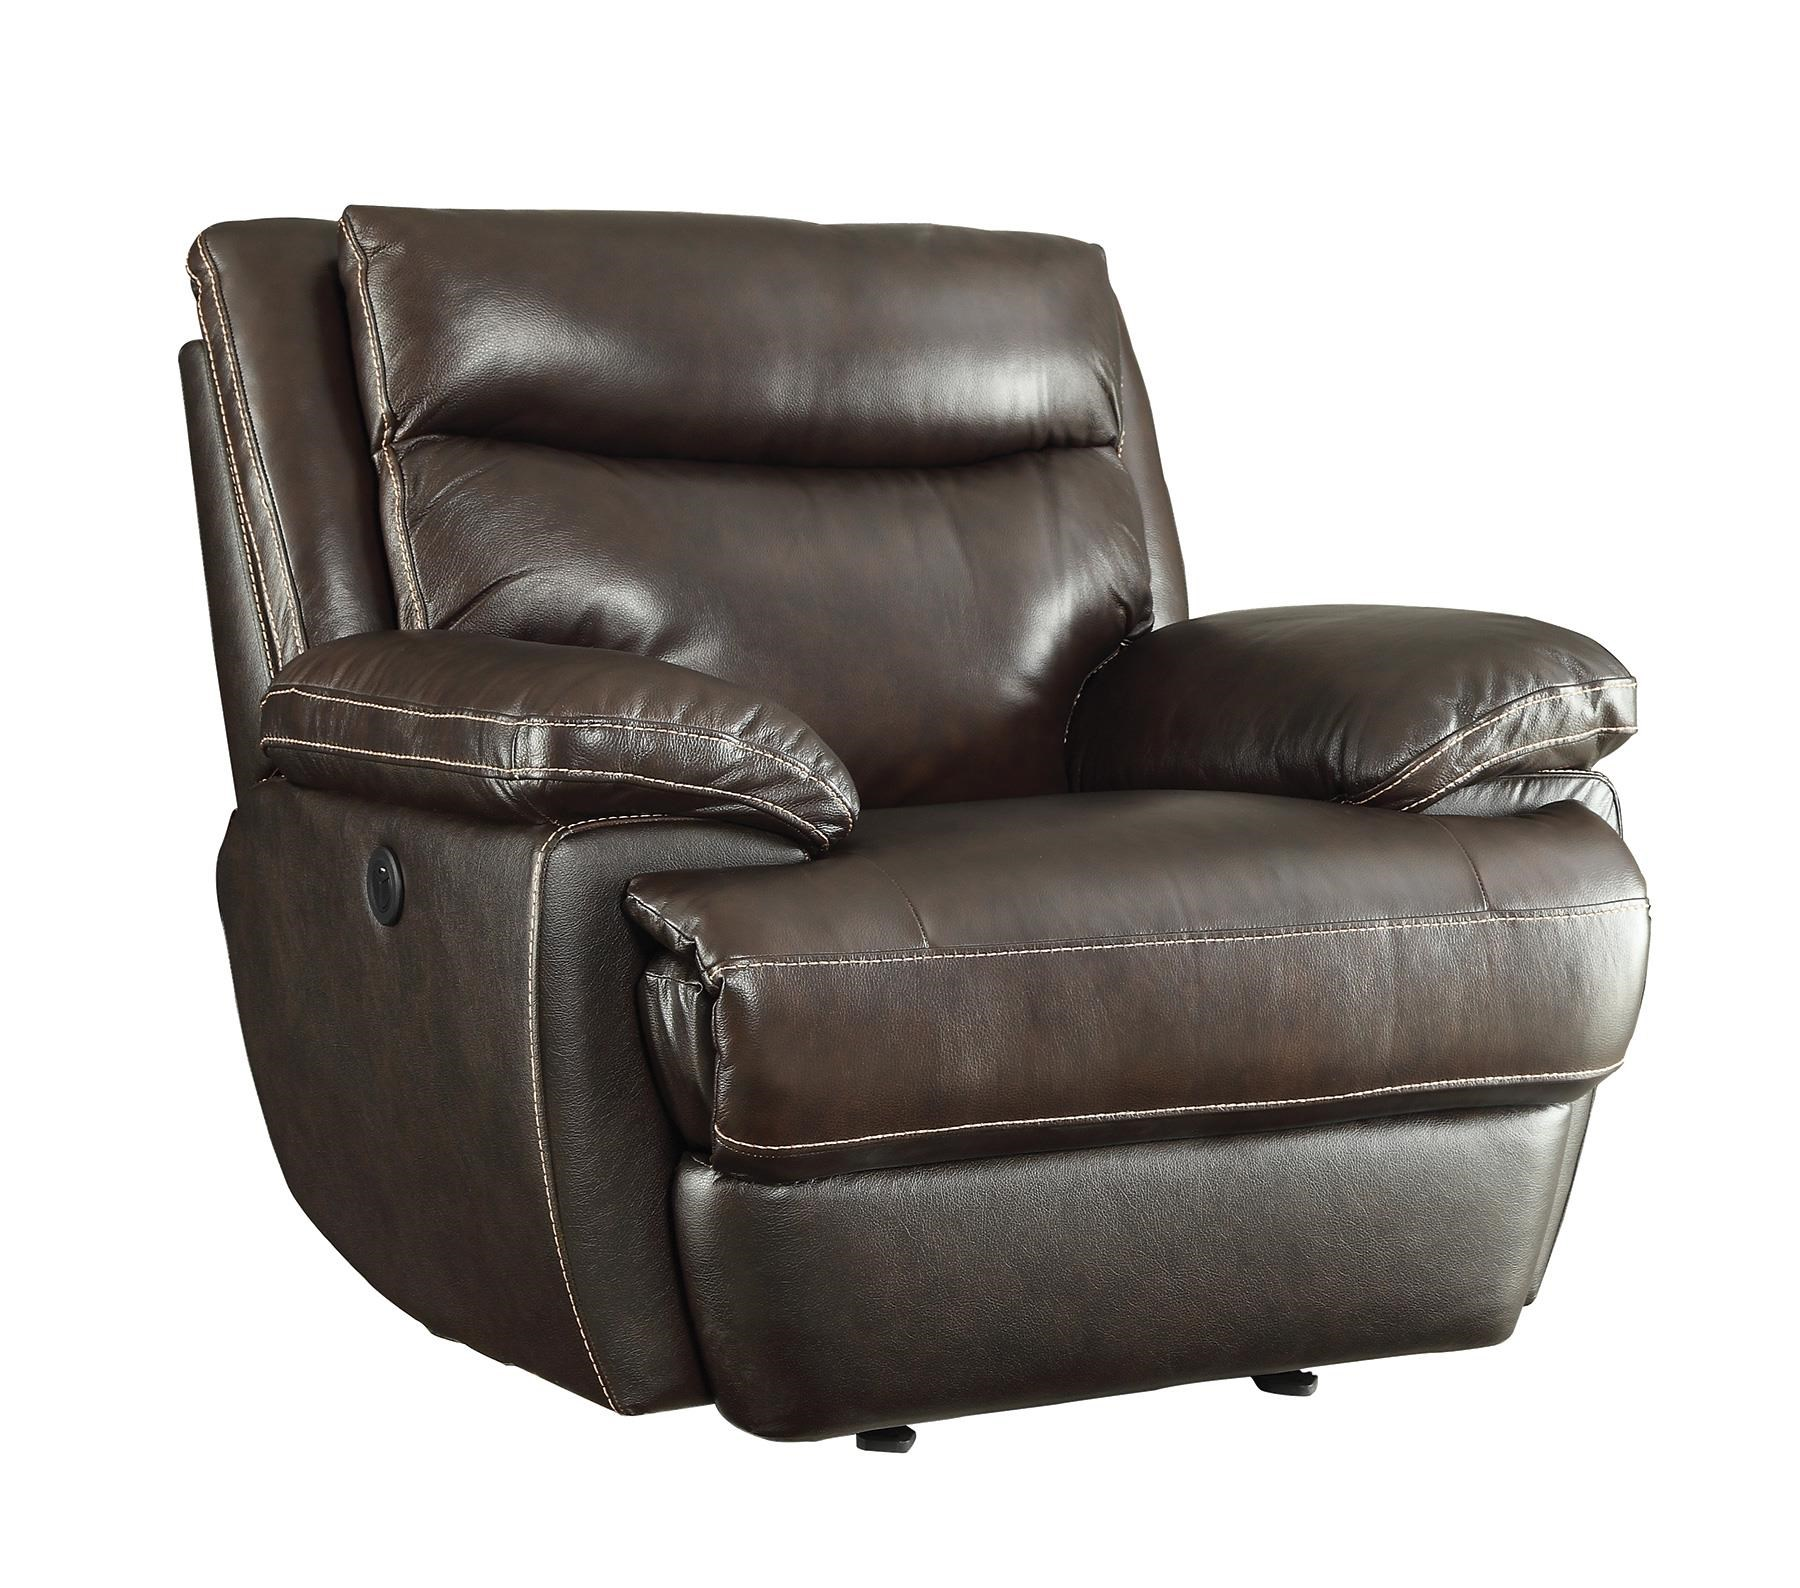 Sofa Relax Con Usb Macpherson Casual Power Recliner With Built In Usb Charging Port By Coaster At Dunk Bright Furniture